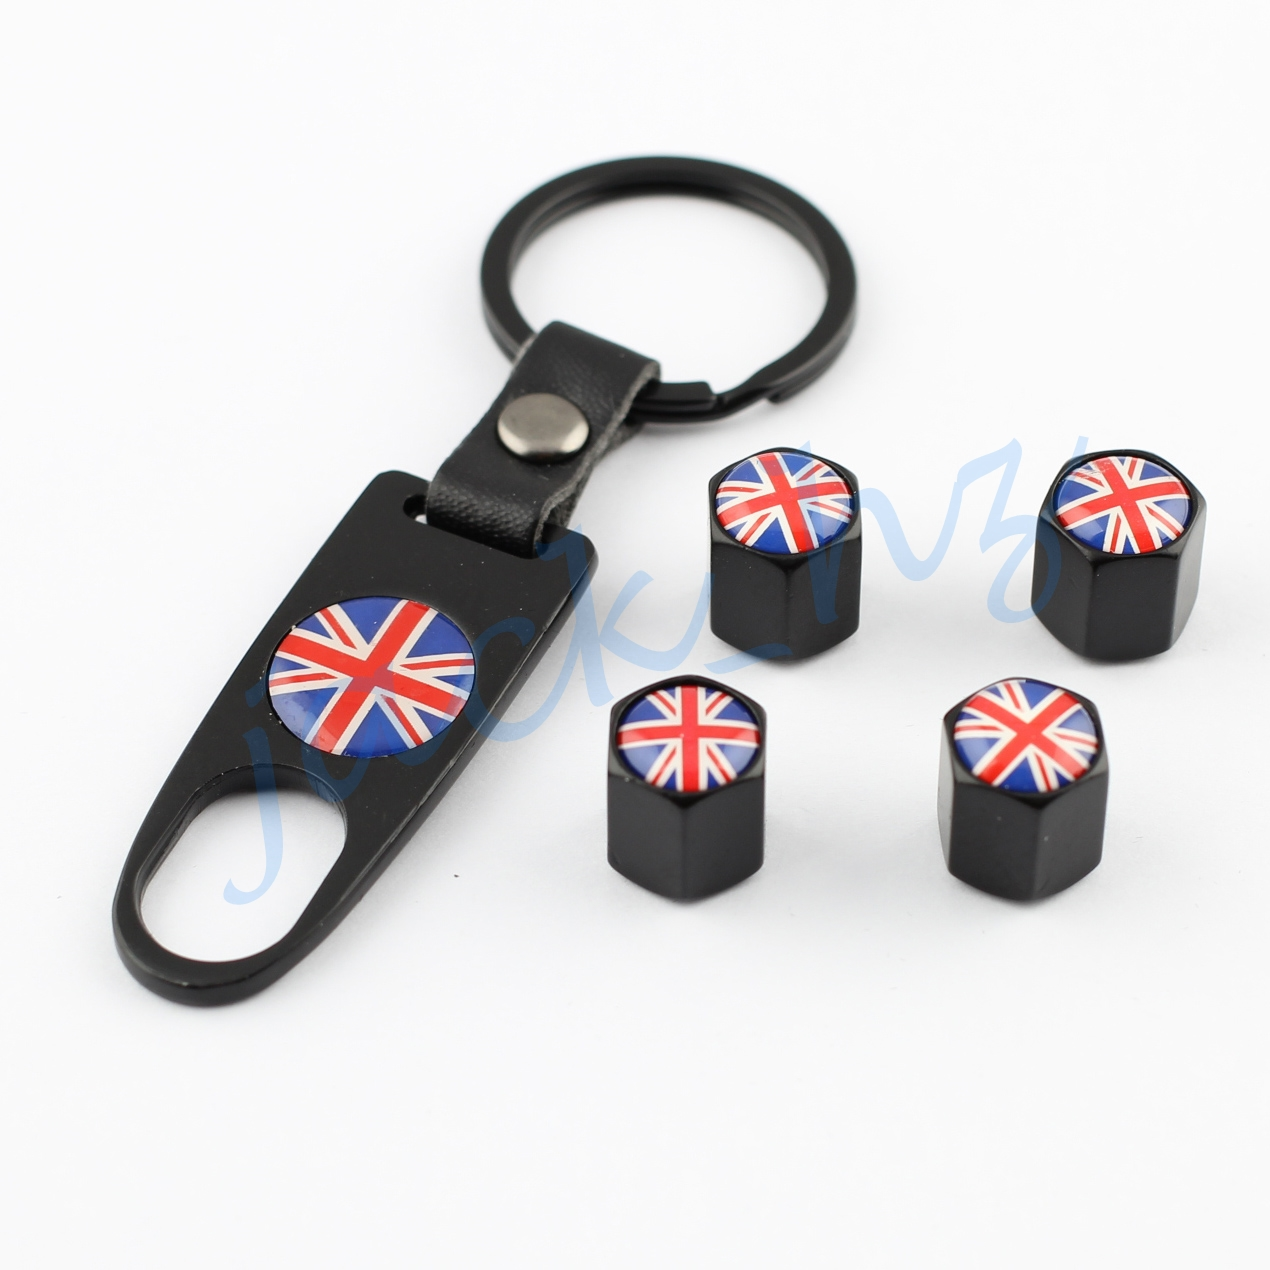 Vehicle auto car accessories parts tire tyre valve air dust cap cover key chain united kingdom nation uk flag styling